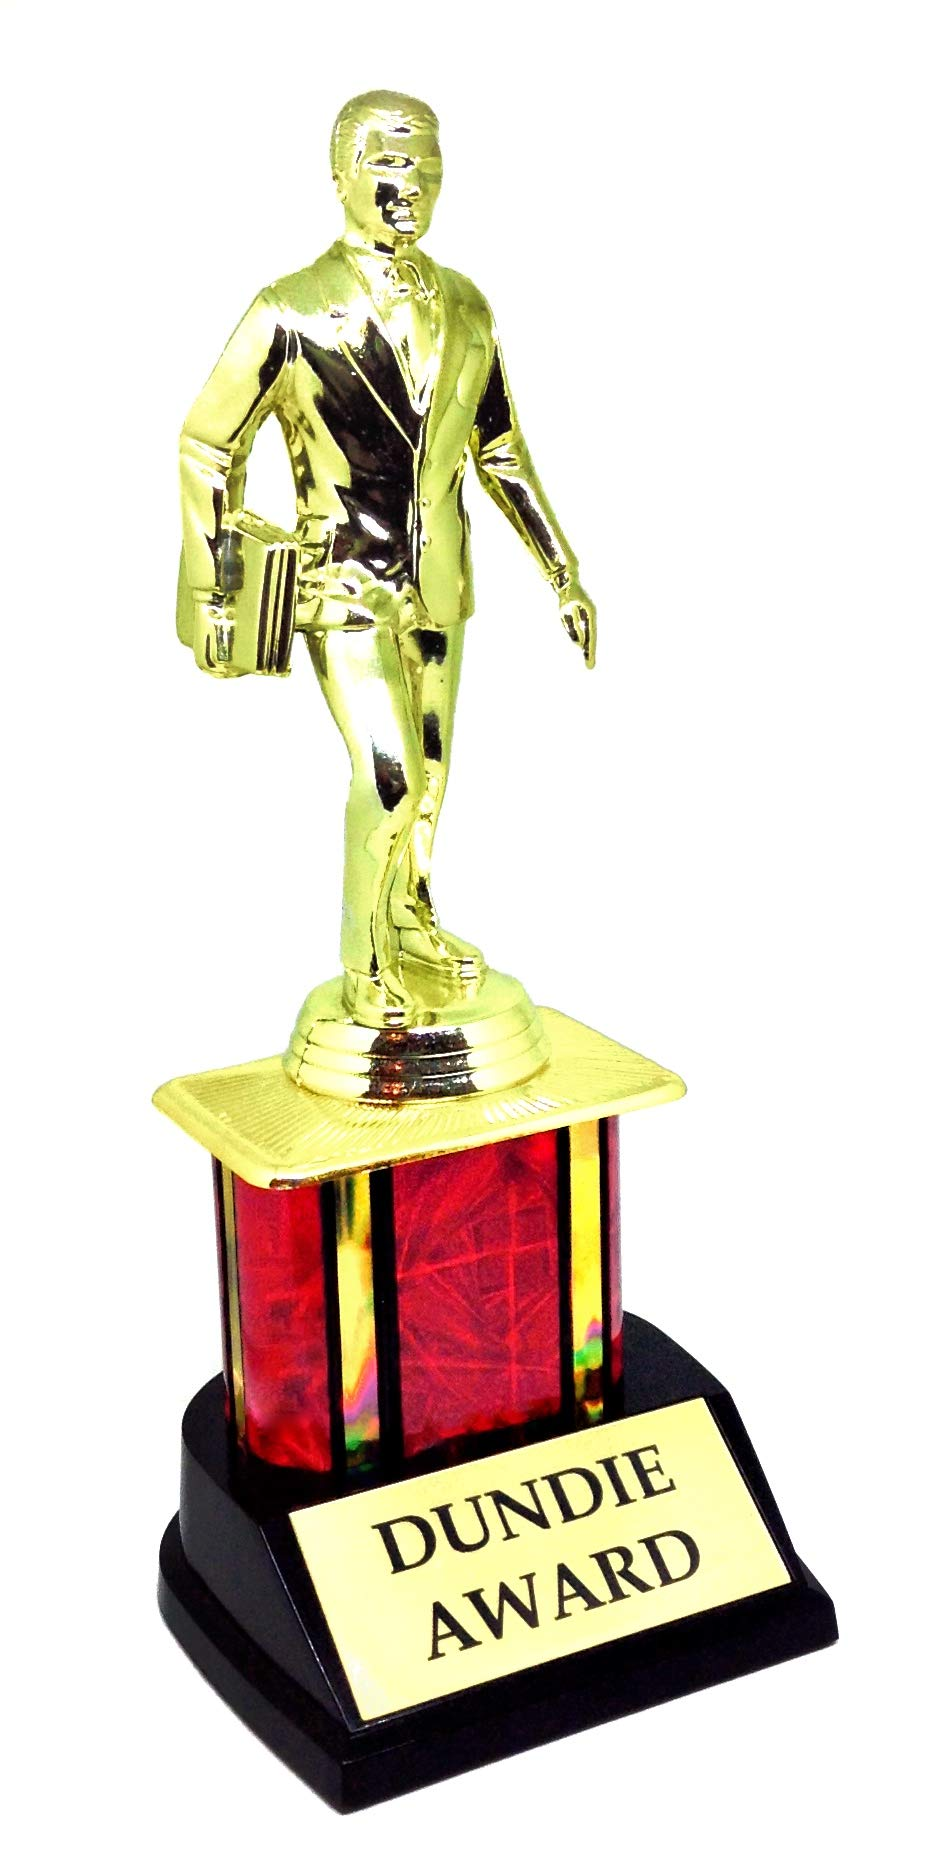 Dundie Award Trophy for The Office - 9.5 in by Alpha Awards